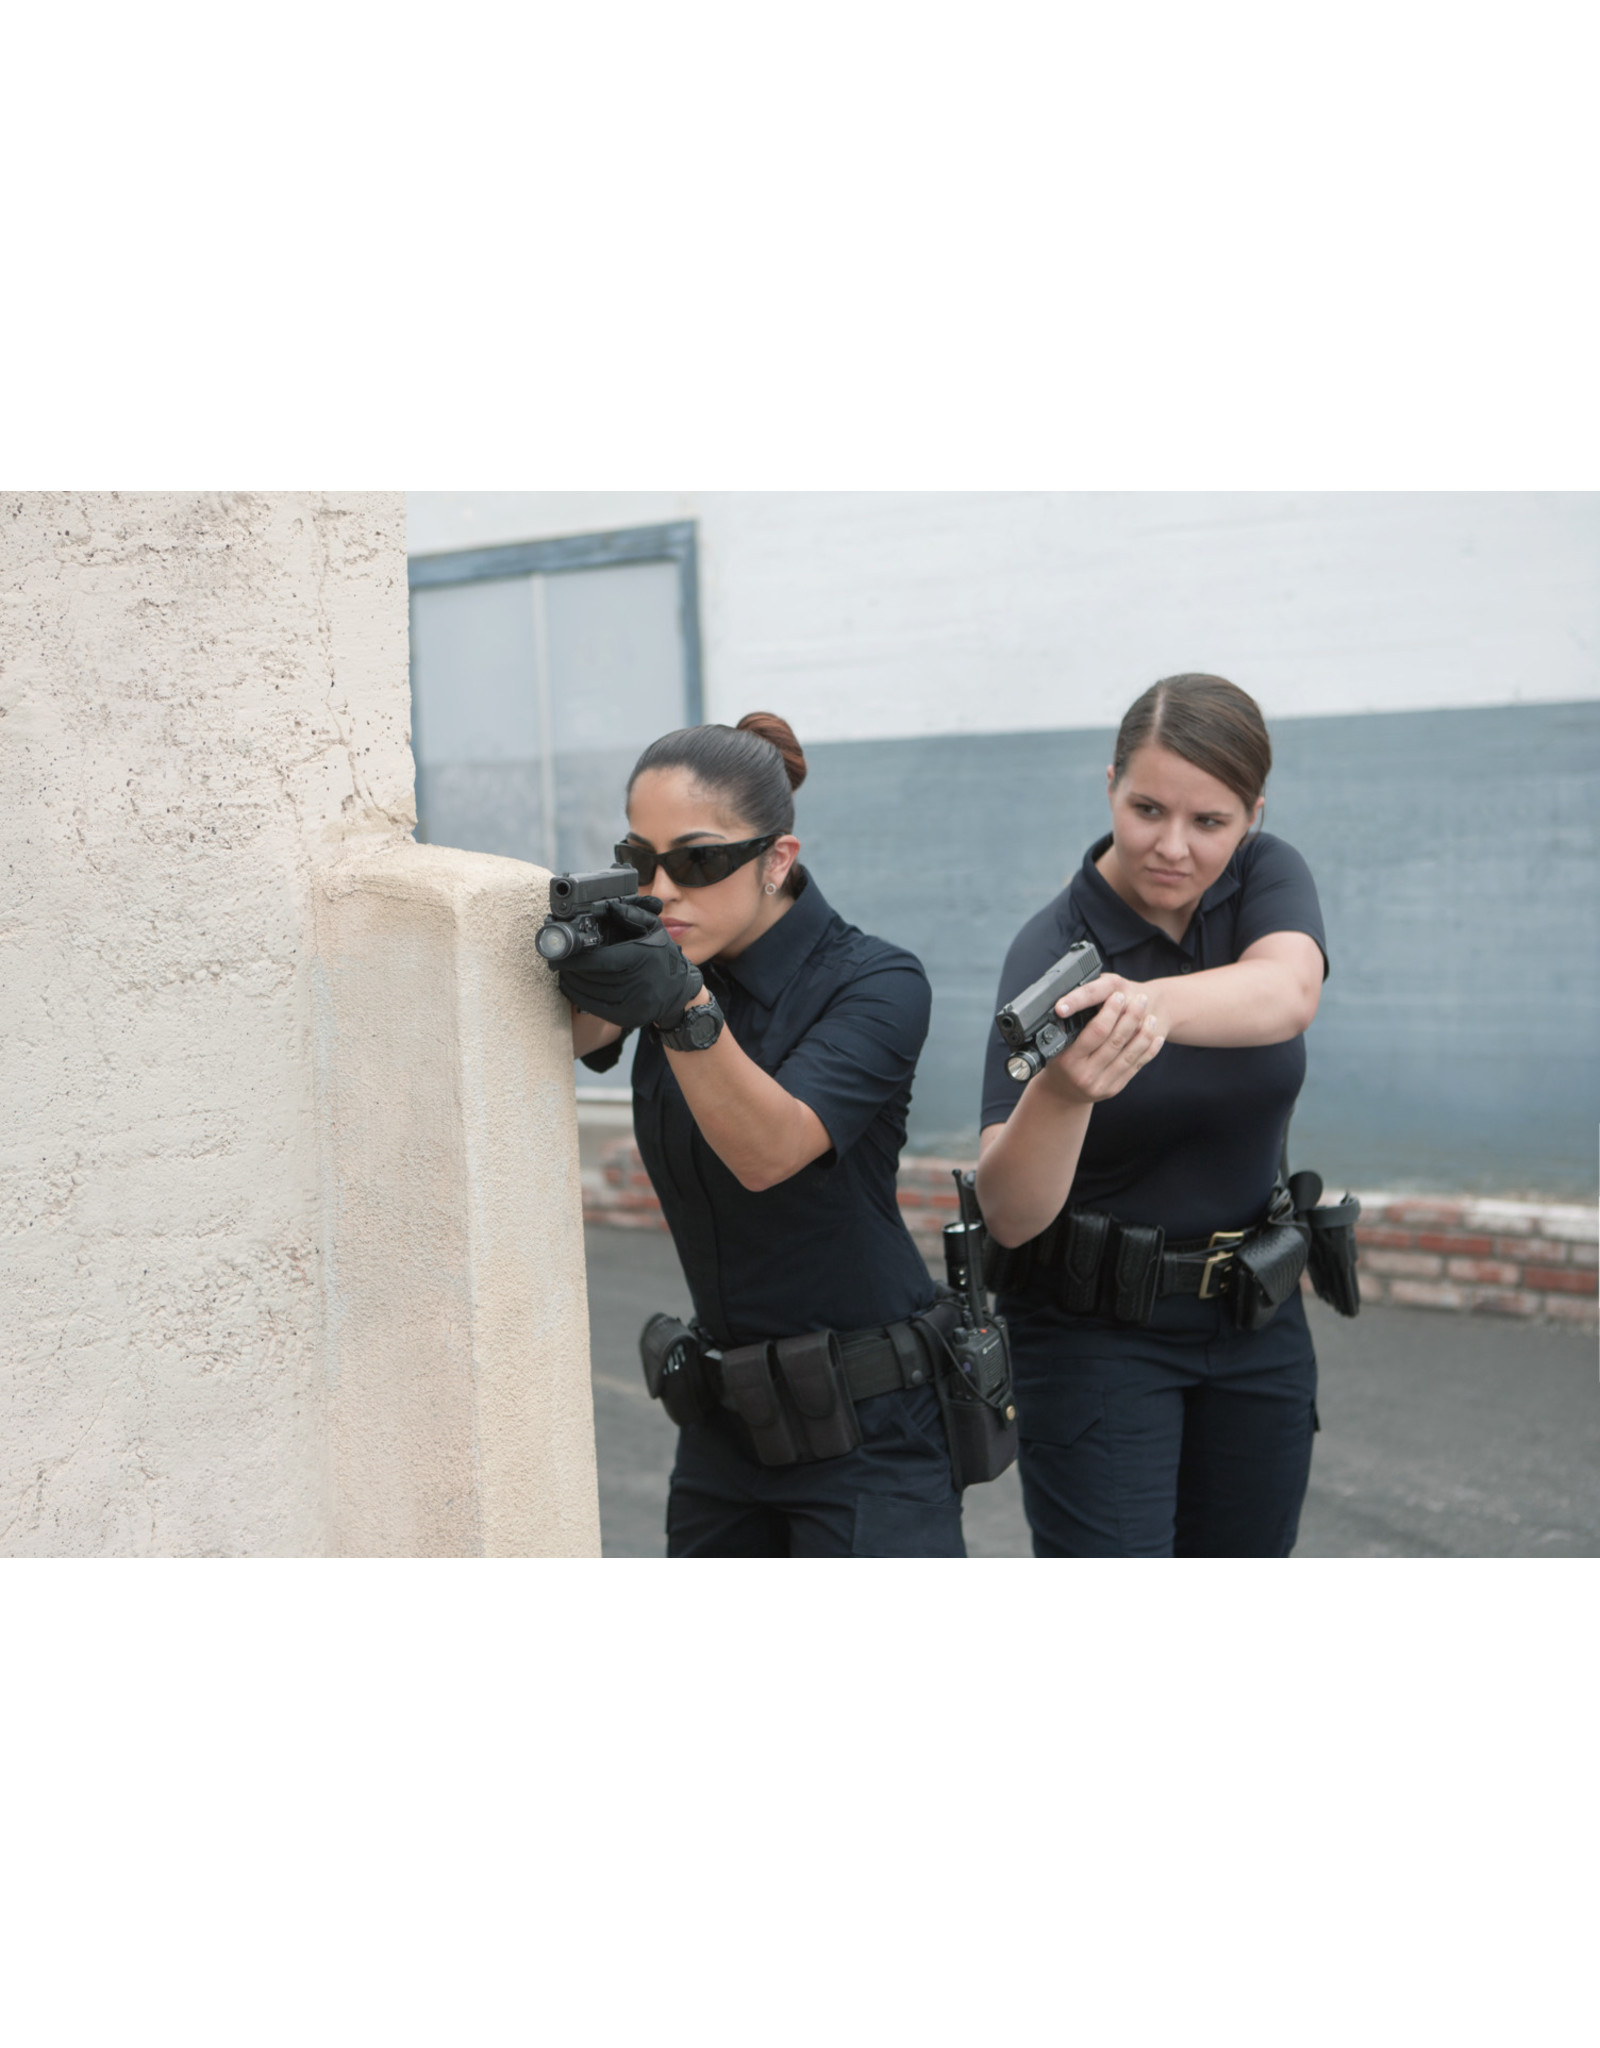 FIRST TACTICAL WOMEN'S V2 TACTICAL PANT(32 INSEAM)